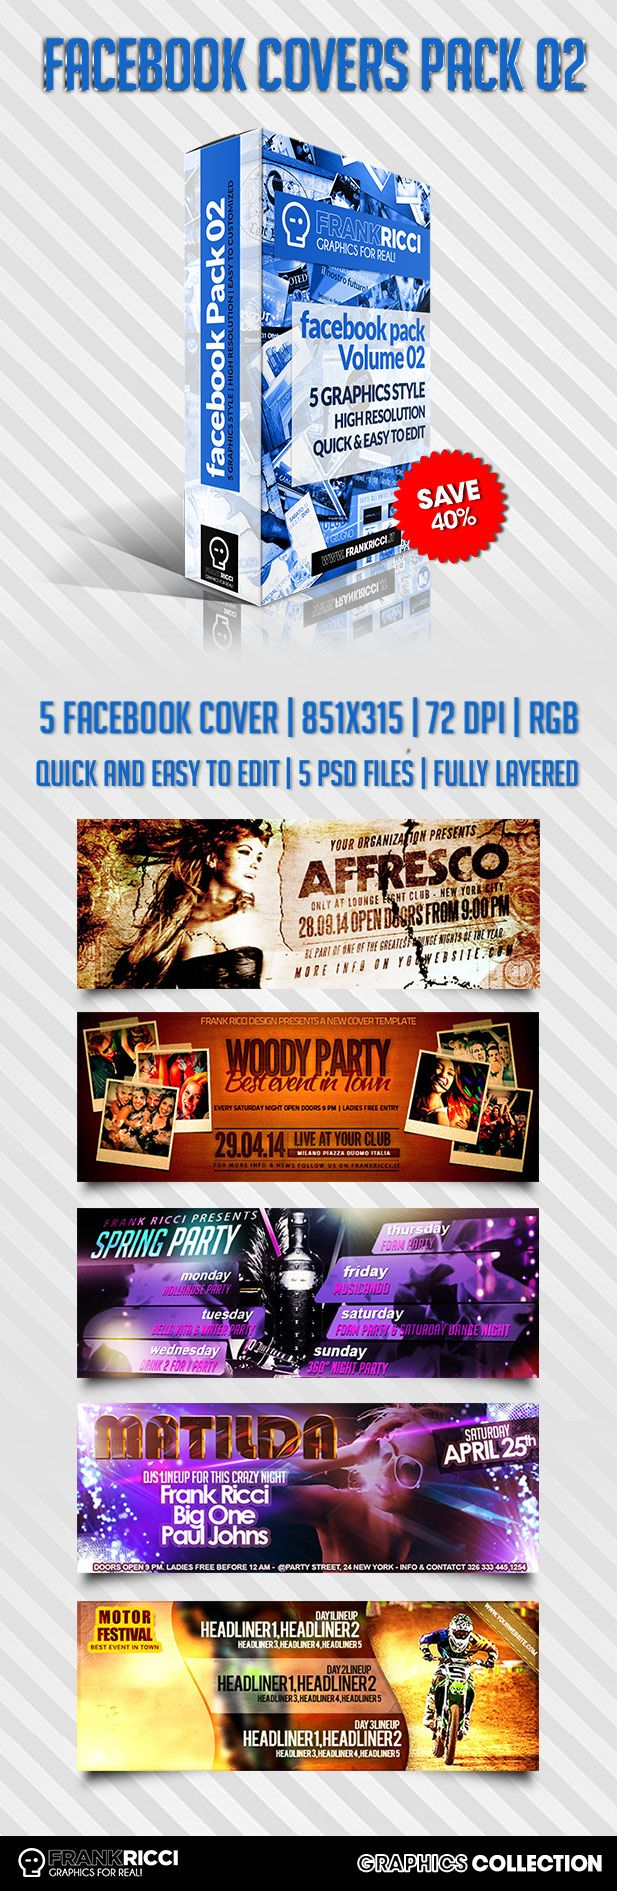 Cover Facebook Pack 02 Template - Available on http://frankricci.it/facebook-cover-pack-02/